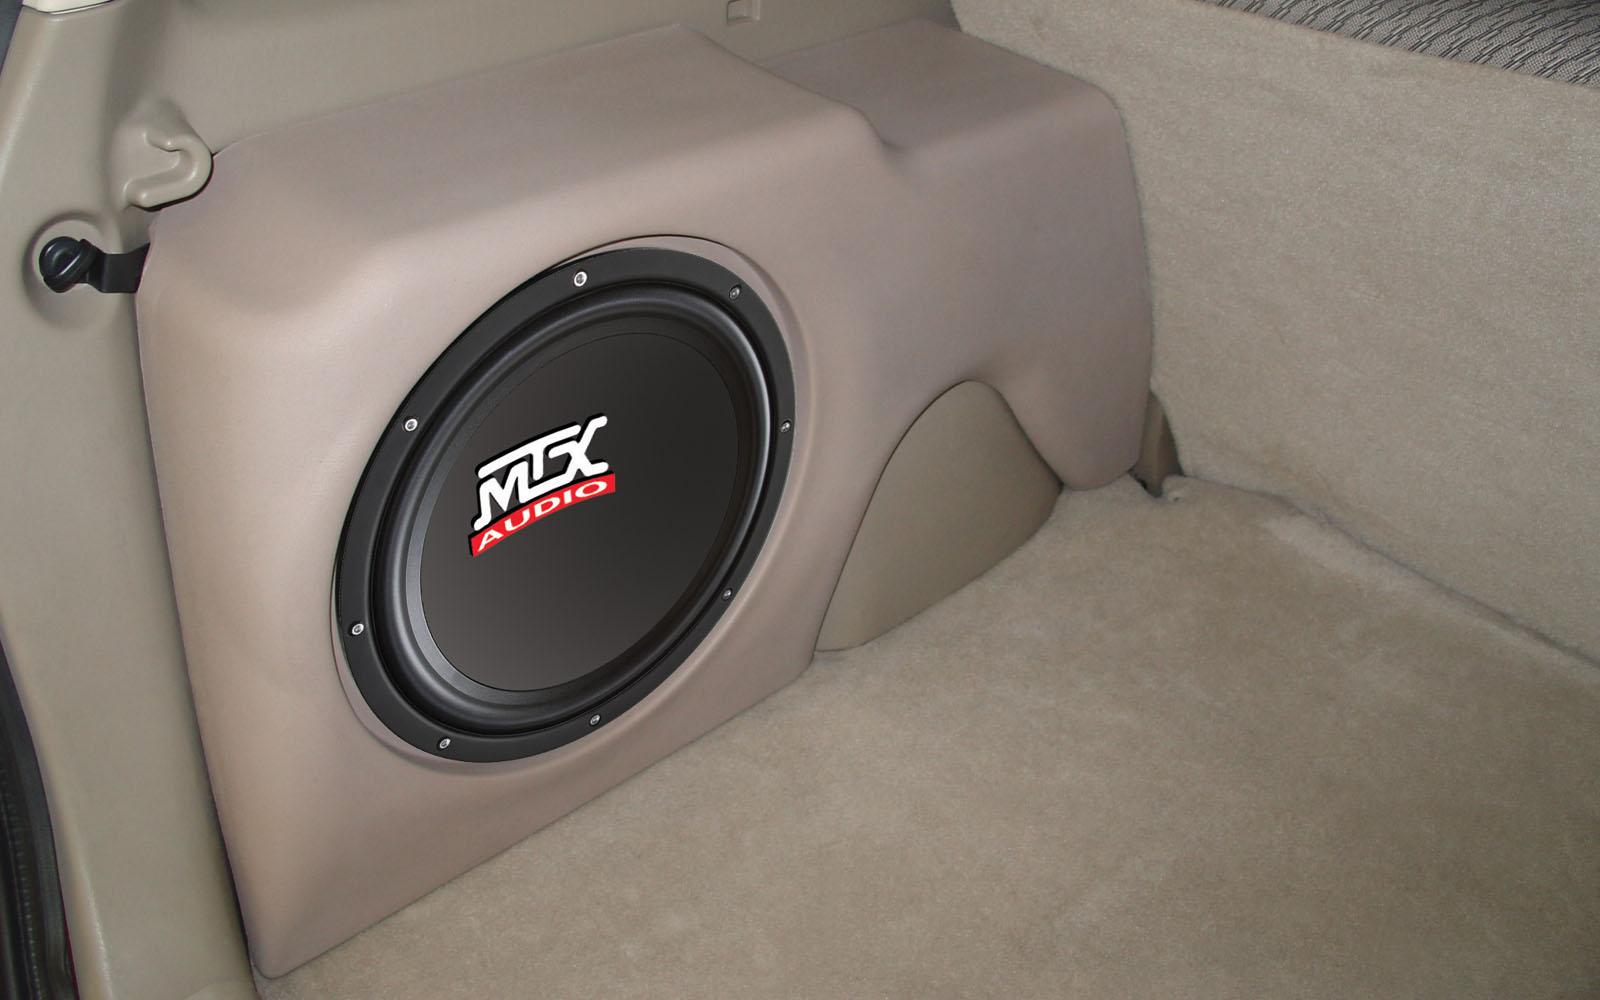 Cadence Fxb Sav Fxb Series Single Slim Design Sealed Powered W Subwoofer Enclosure together with Subwoofer Reviews as well Ford Mustang  lified Inch W Rms Vehicle Specific Custom Subwoofer Enclosure together with S L further Arton. on mtx 12 powered subwoofer